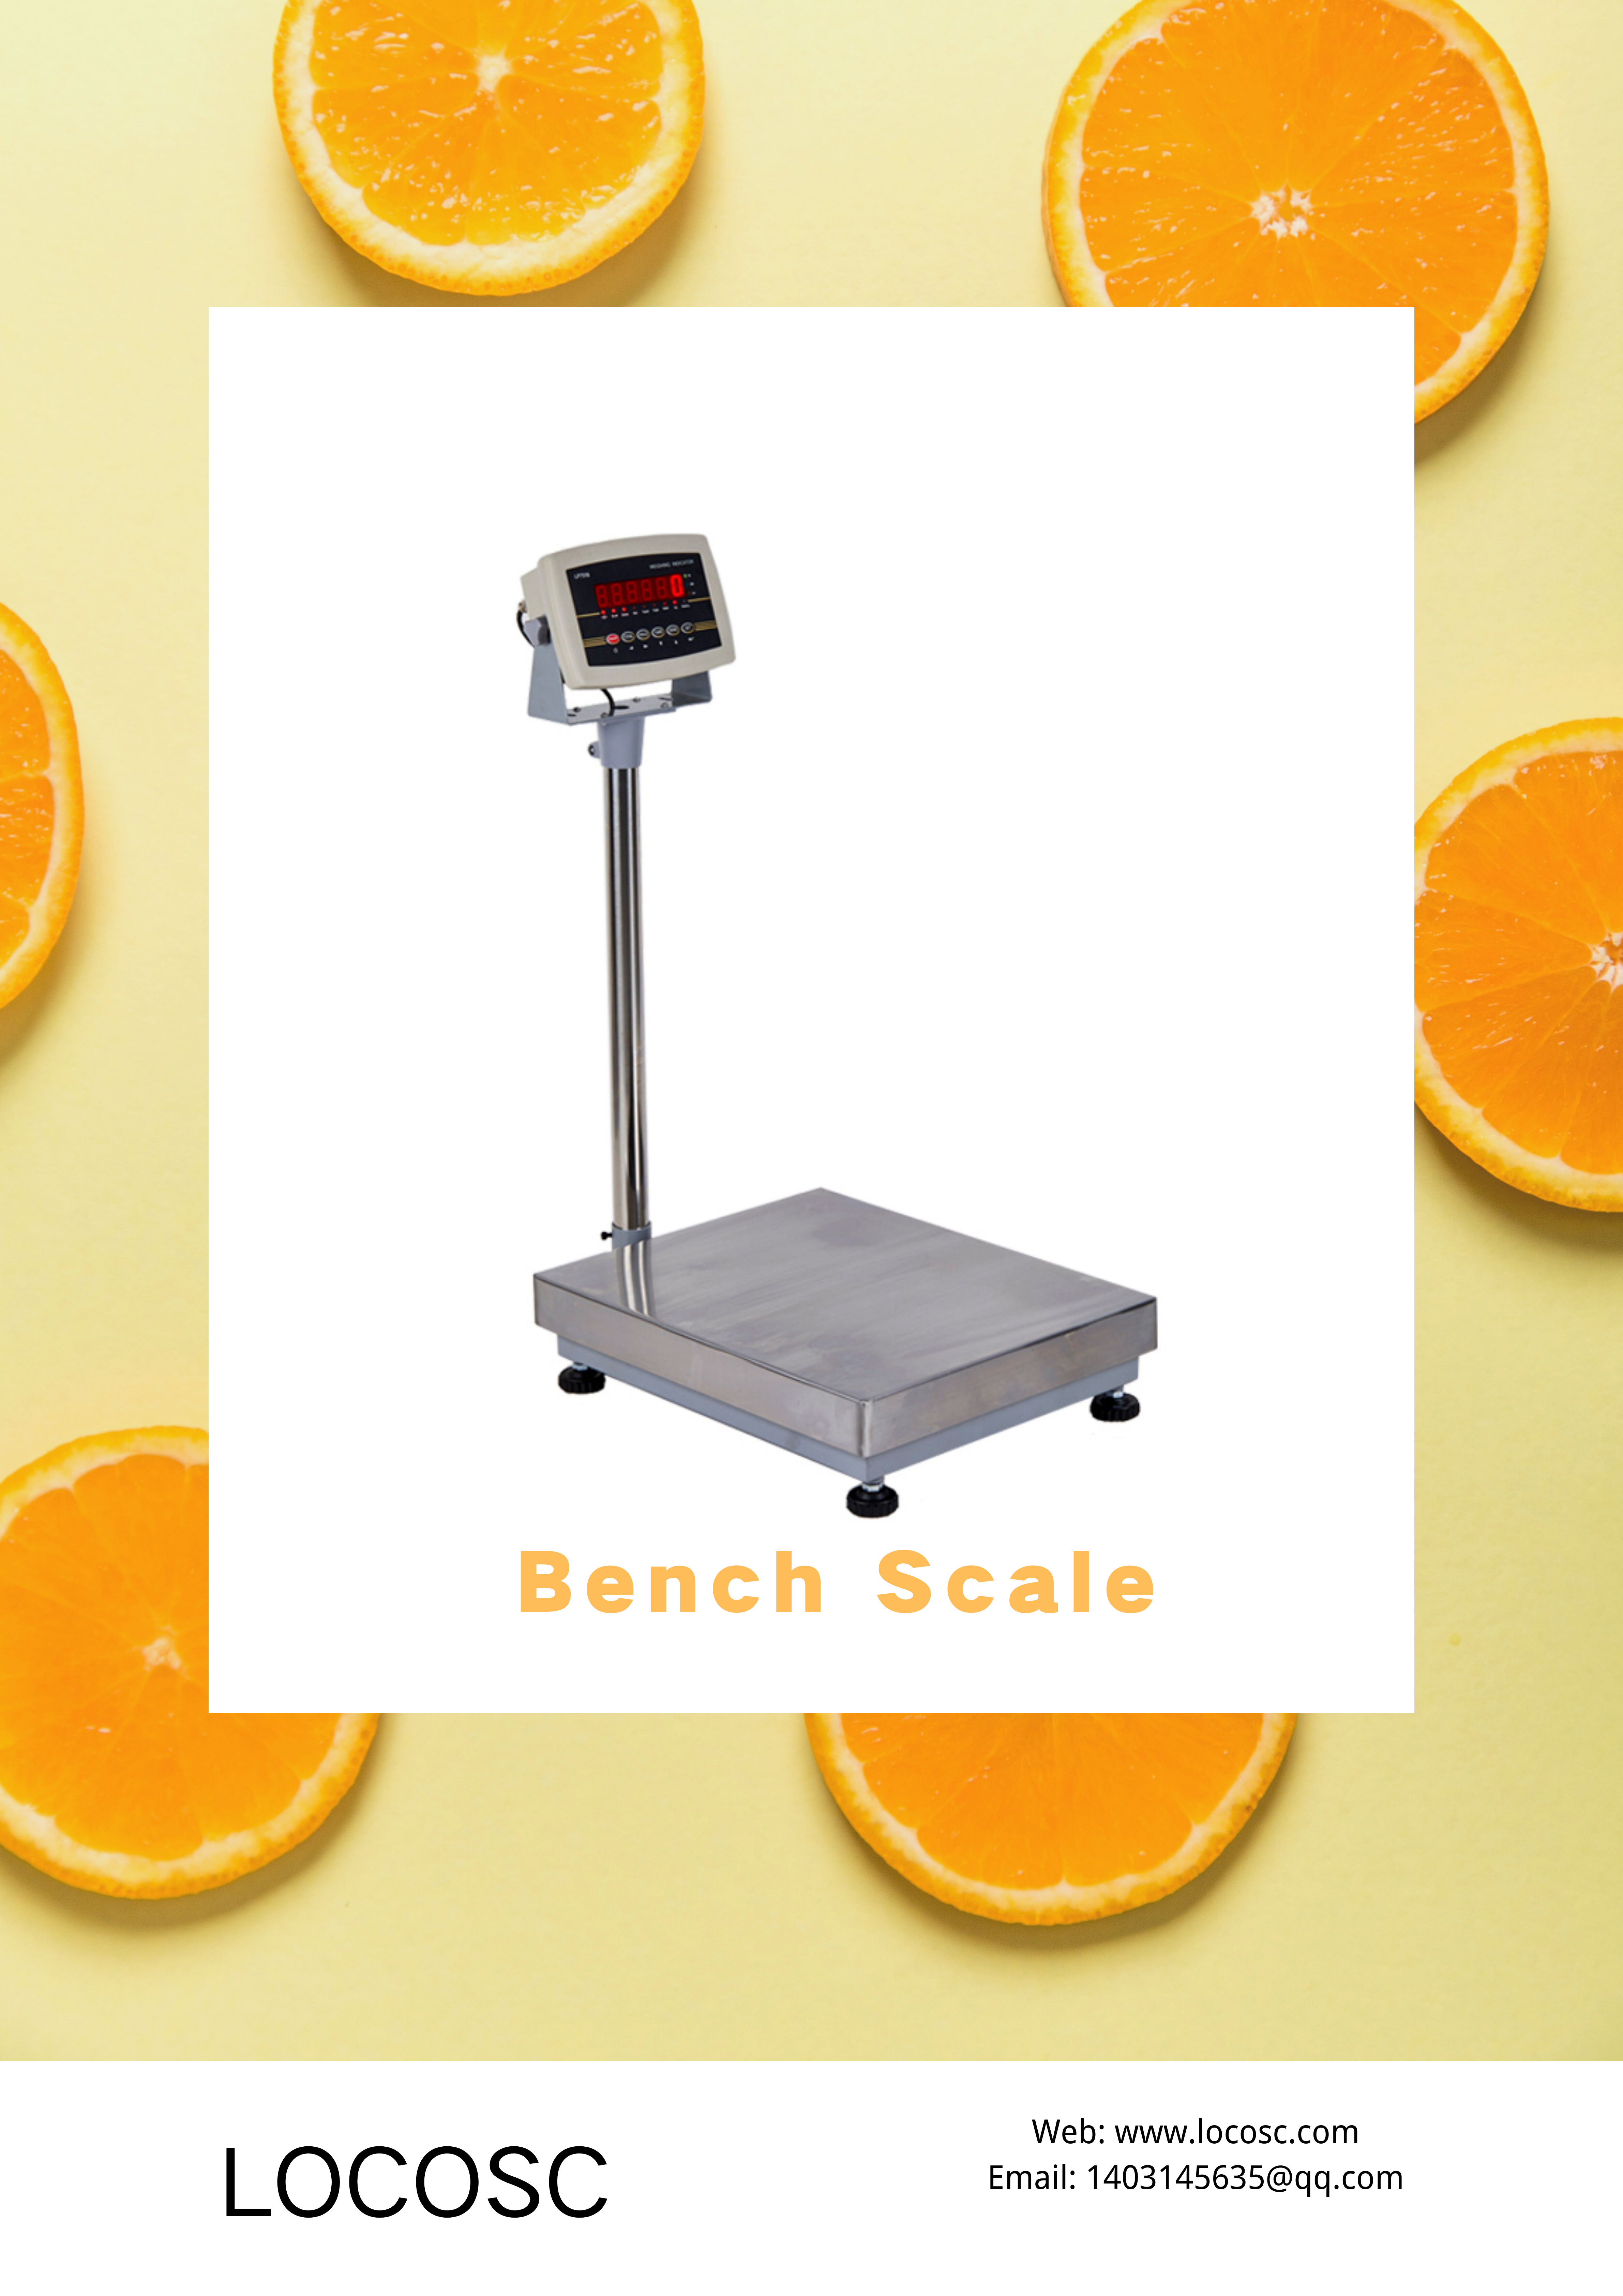 Round Pole RS232 RS485 Bluetooth Weighing Scale (con imágenes)